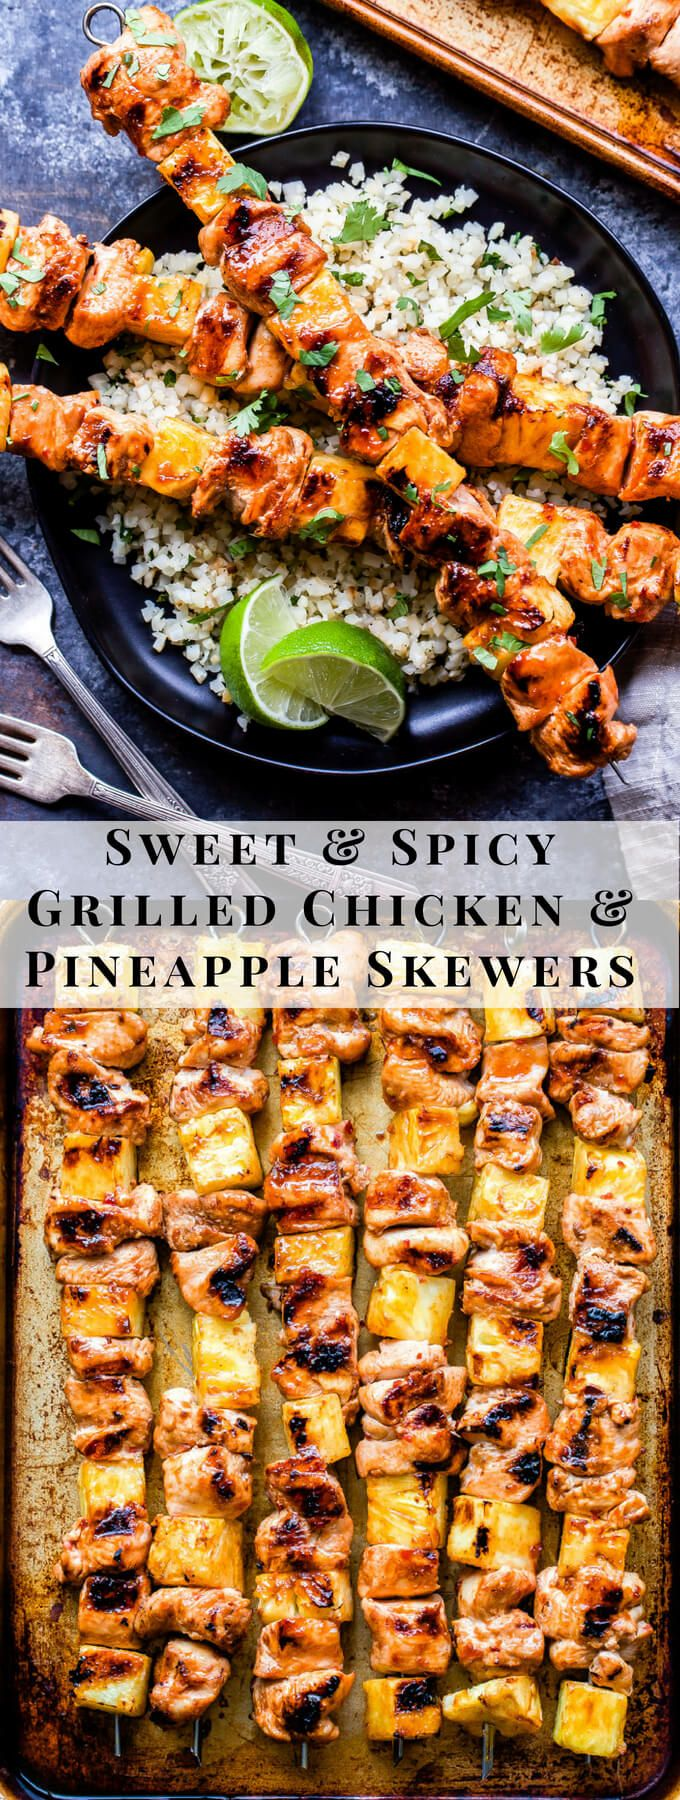 Sweet and Spicy Grilled Chicken and Pineapple Skewers will be your go-to dinner …